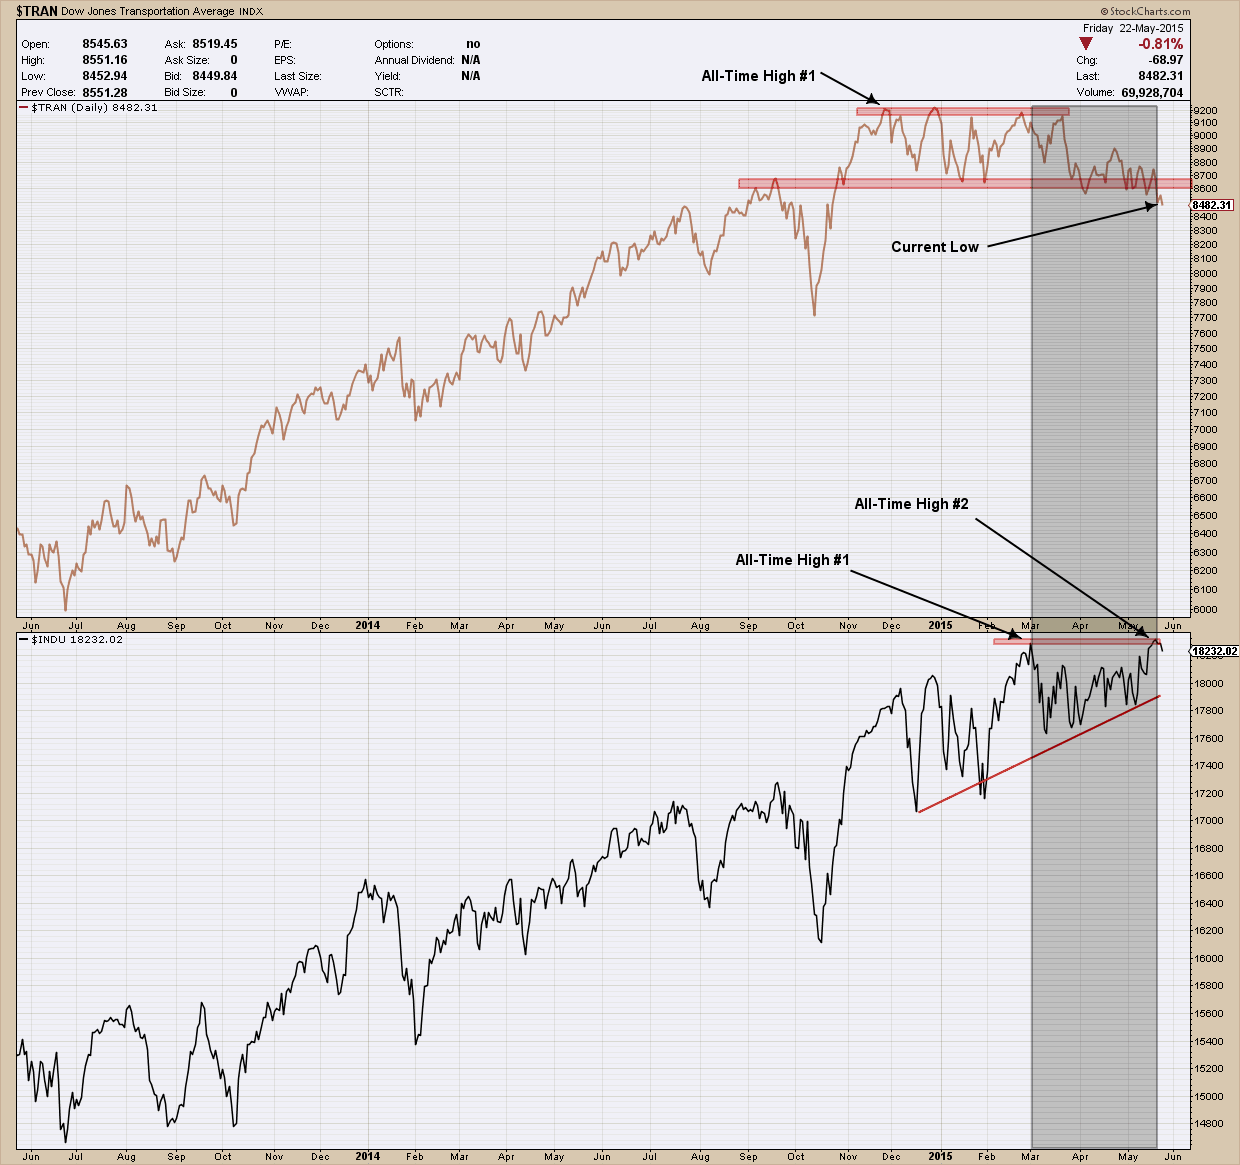 Bay area investment adviser - dow theory